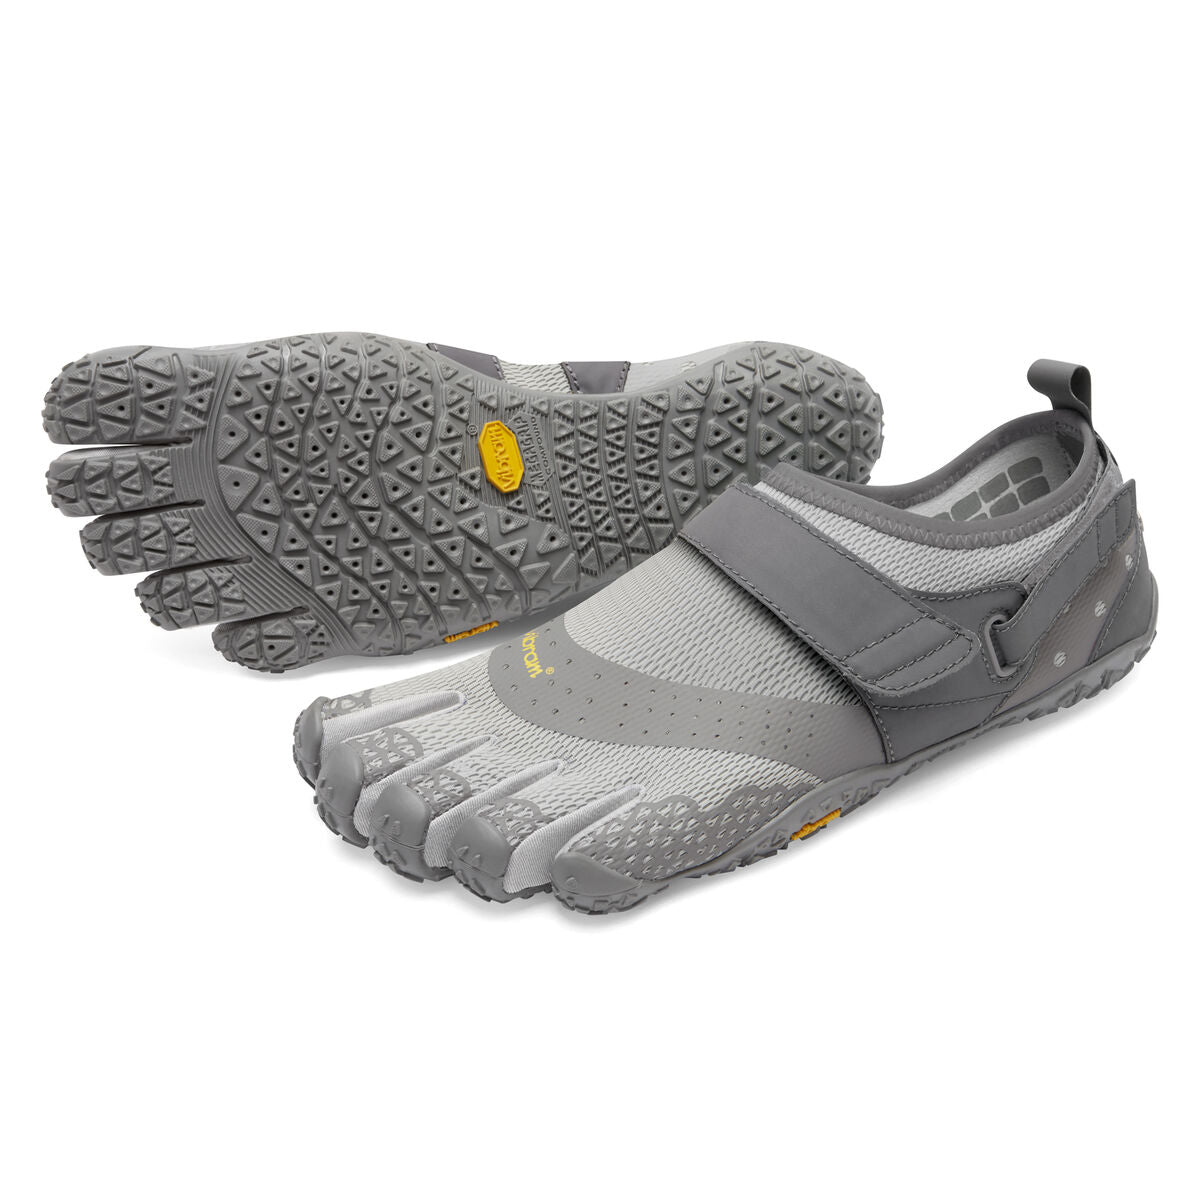 Men's Vibram Five Fingers V-Aqua Water Shoe in Grey from the front